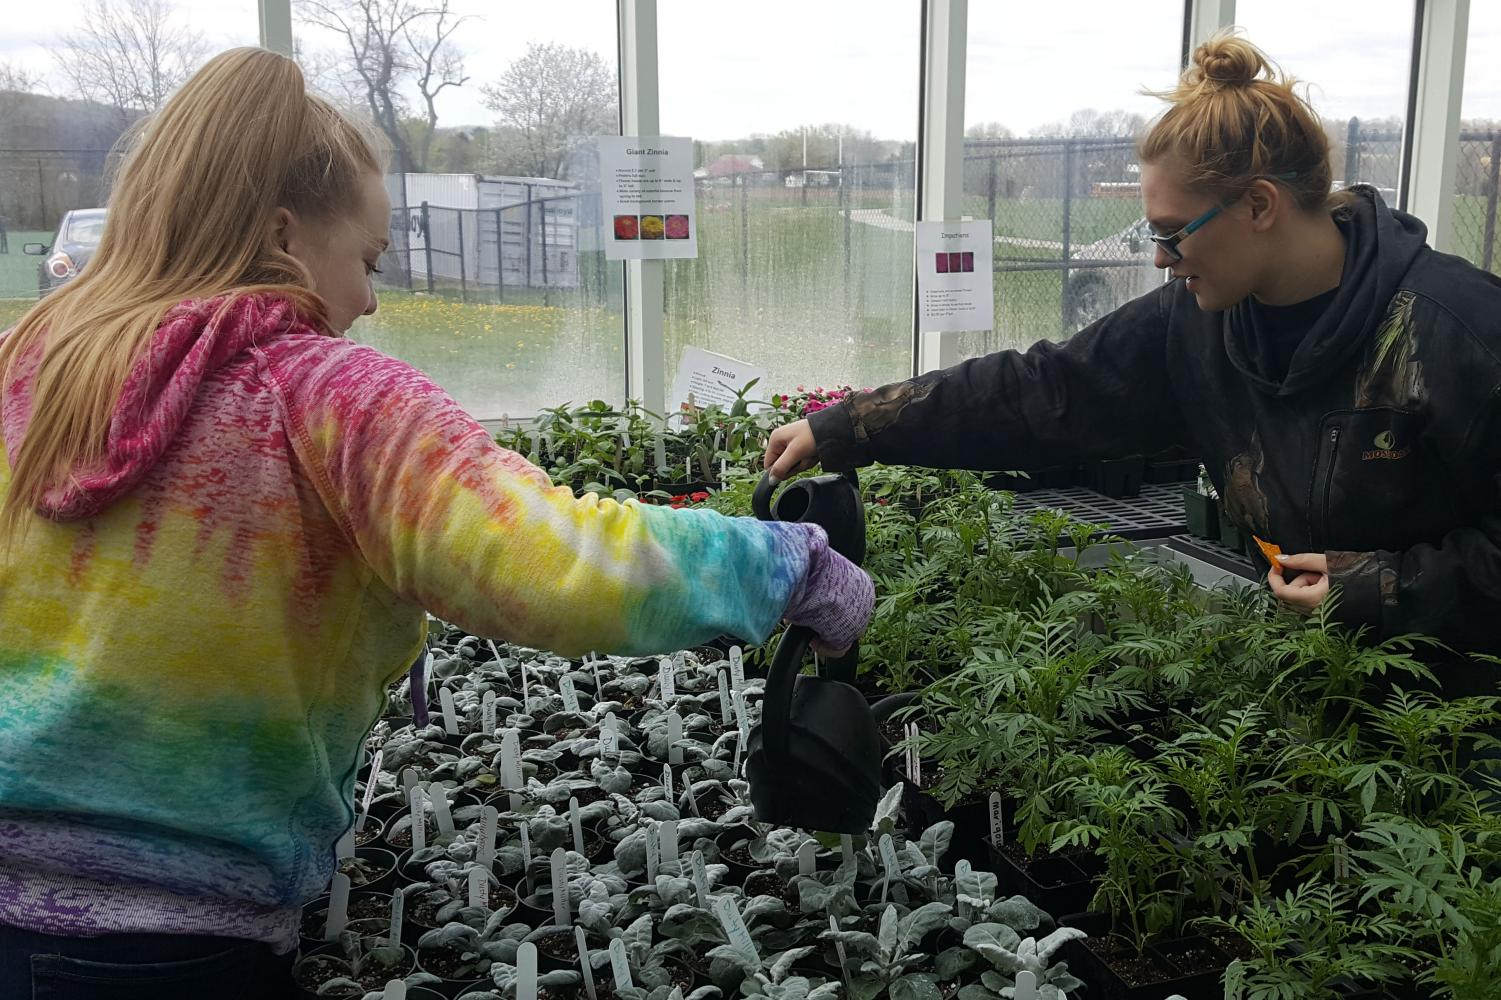 Mikayla Jordan and Breanna Spielman watering plants at the plant sale.